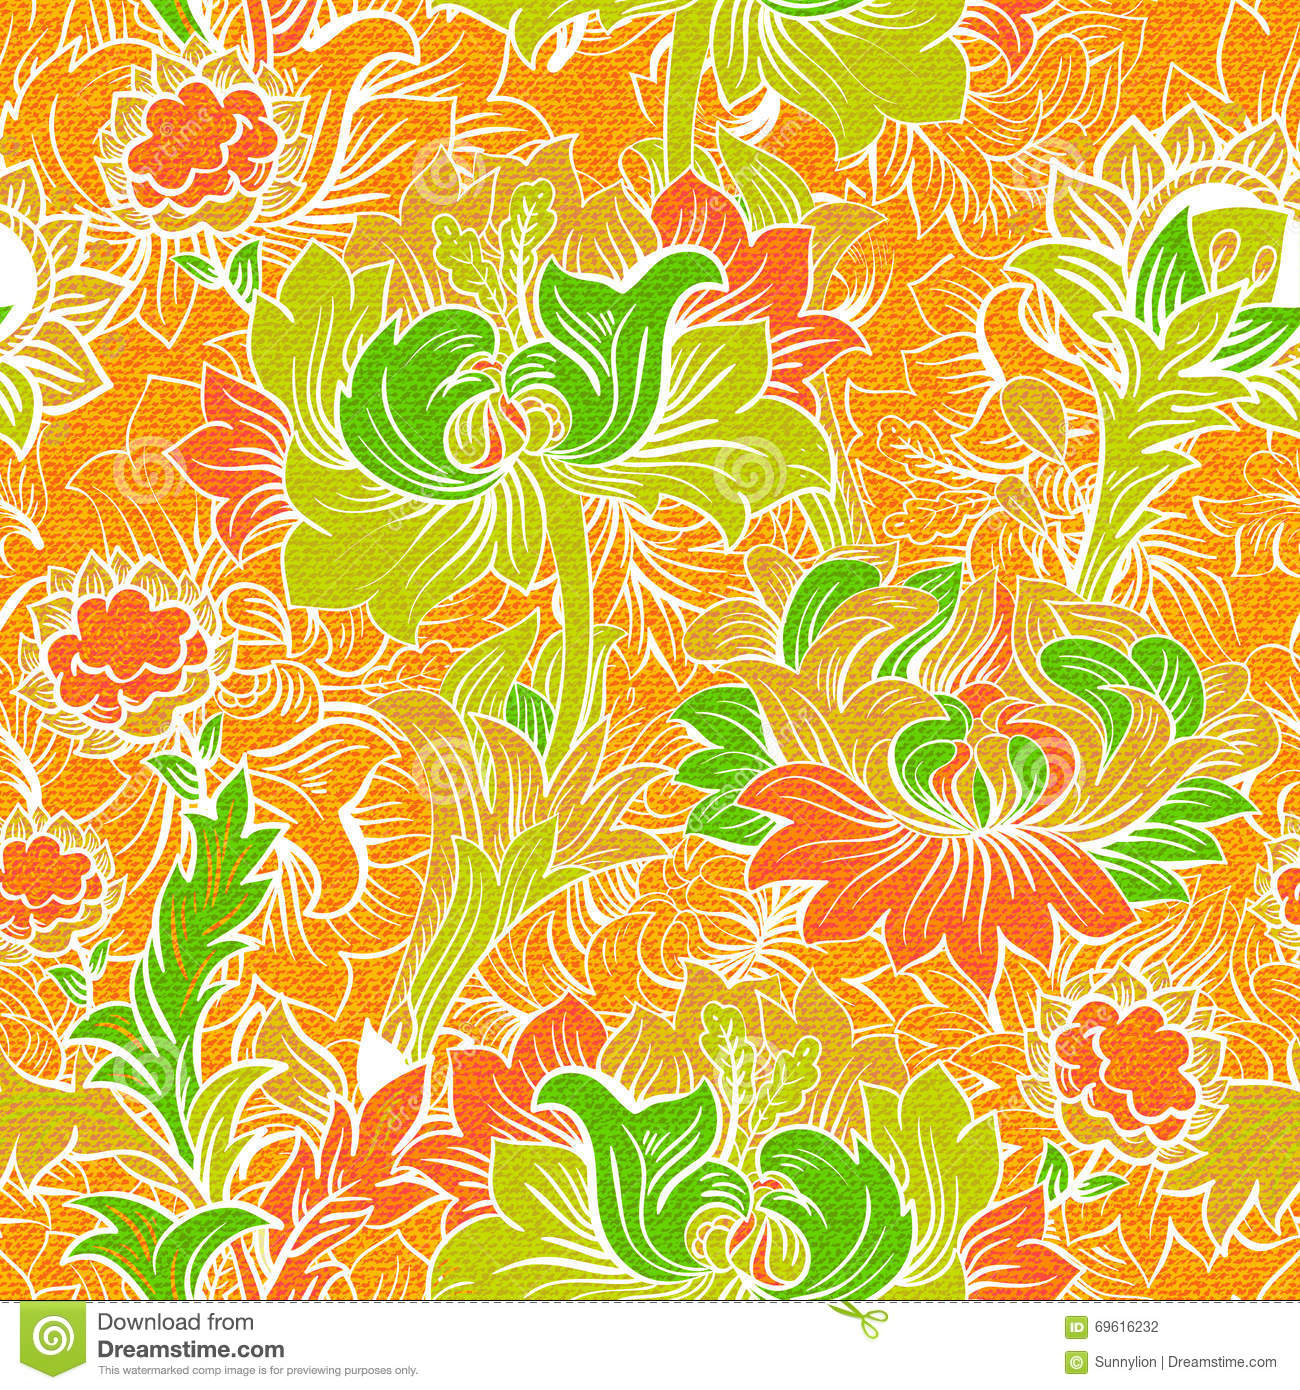 colorful floral background patterns - photo #28